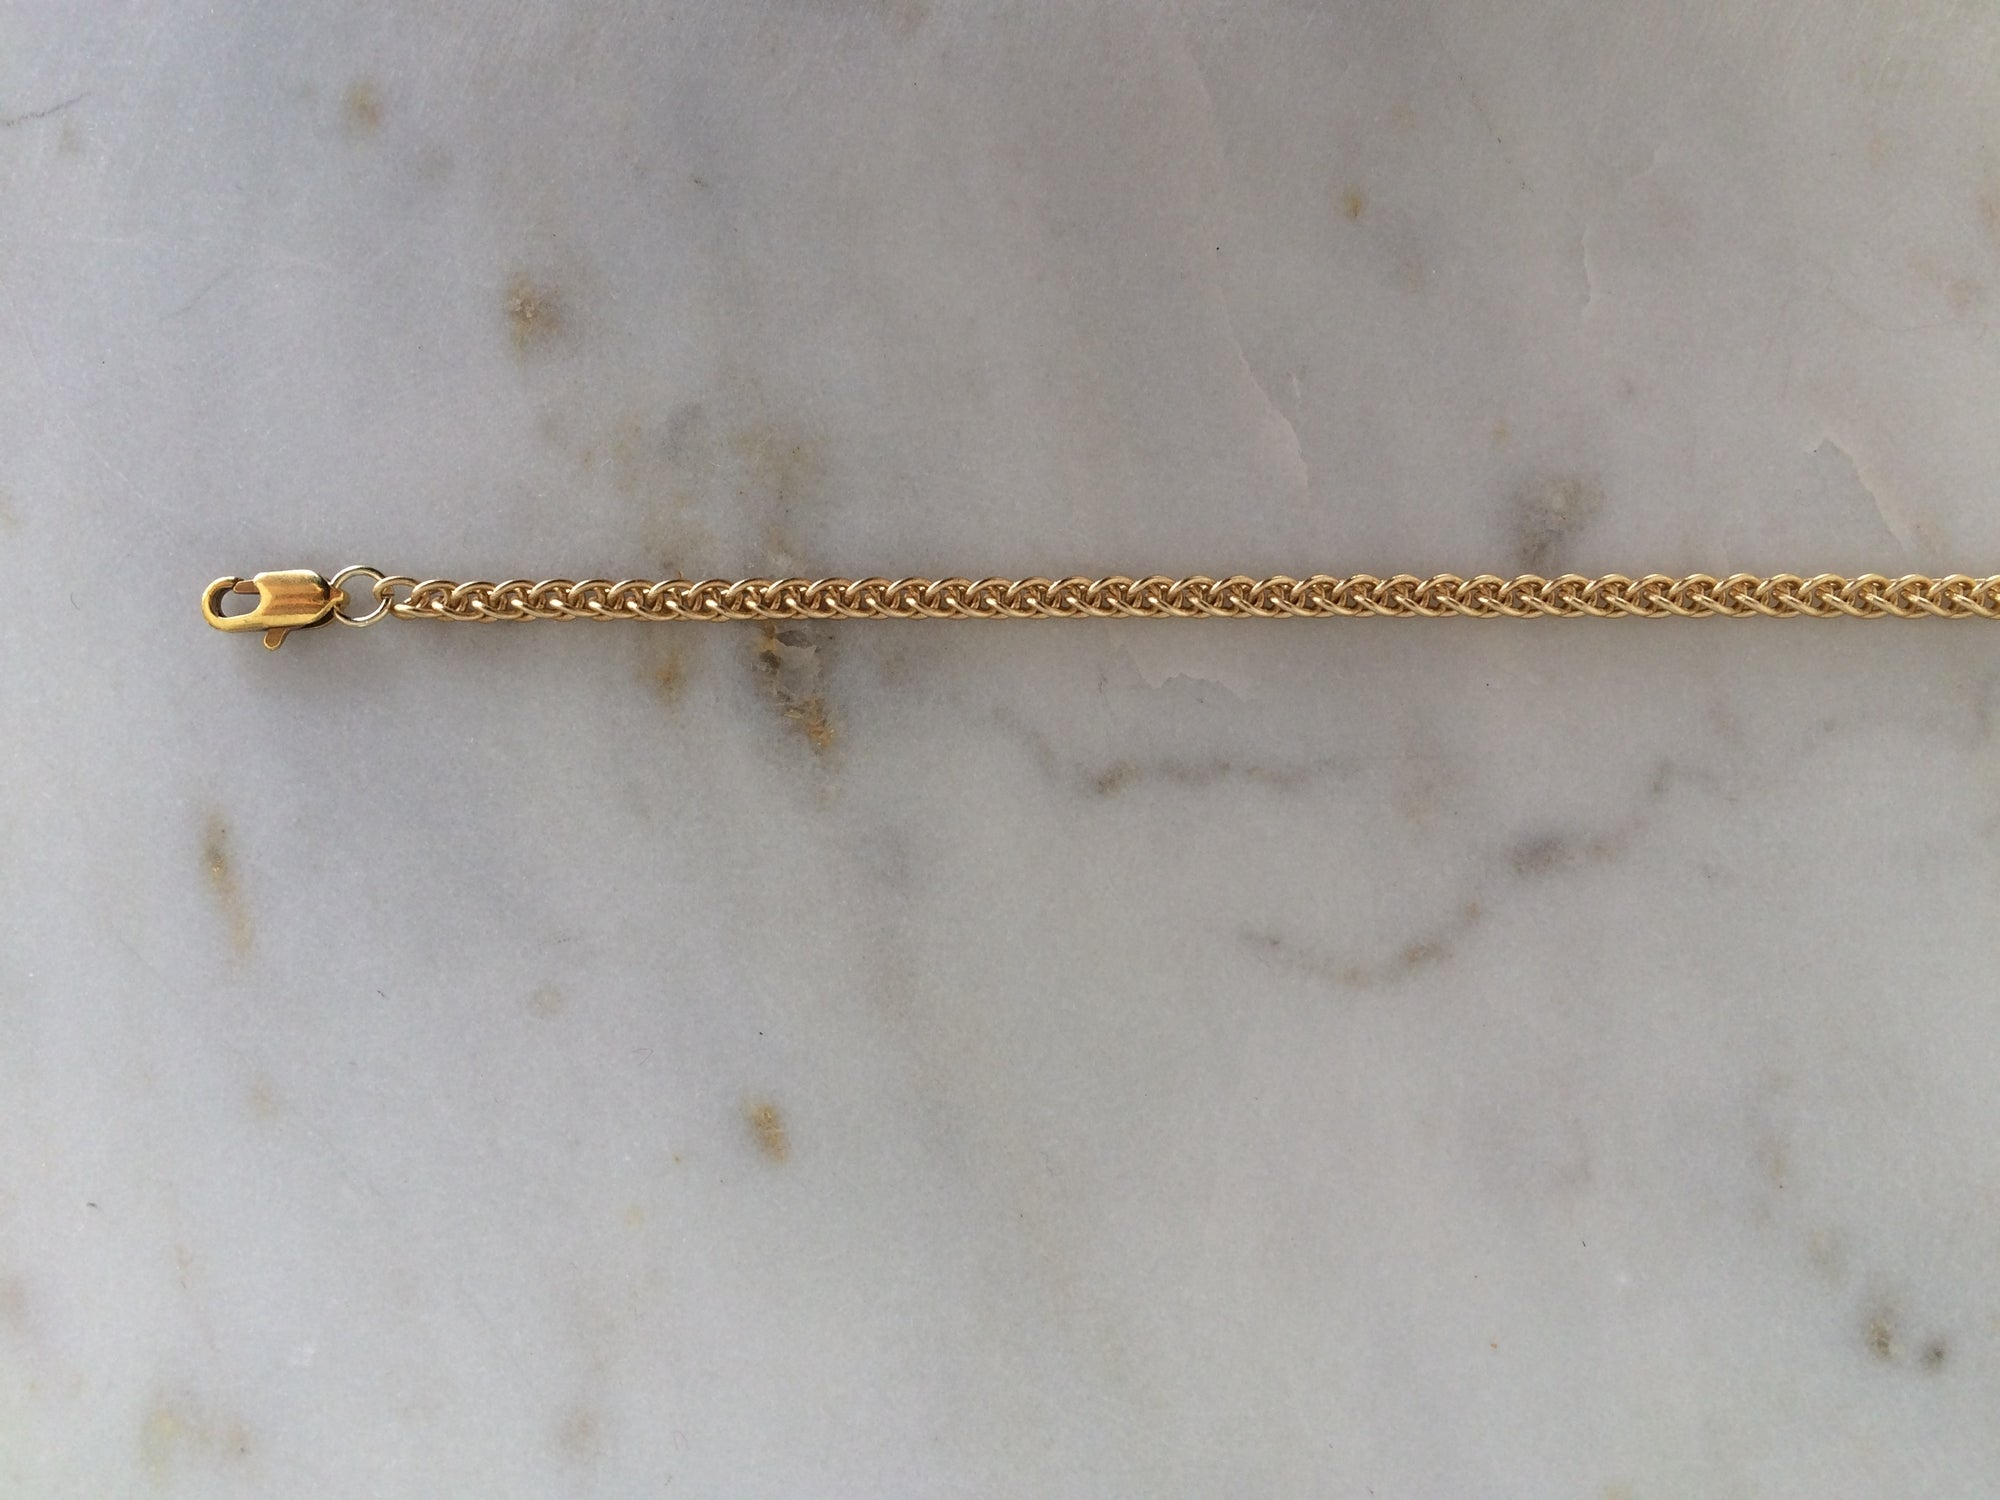 gold patterned chain choker, gold plated chain, gold plated choker, gold necklace, gold choker,gold linked chain, likned chain choker, thick choker chain,gold chain choker necklace,gold chain choker set,gold plated brass choker,dainty gold chain choker,demi fine jewelry,gold jewelry